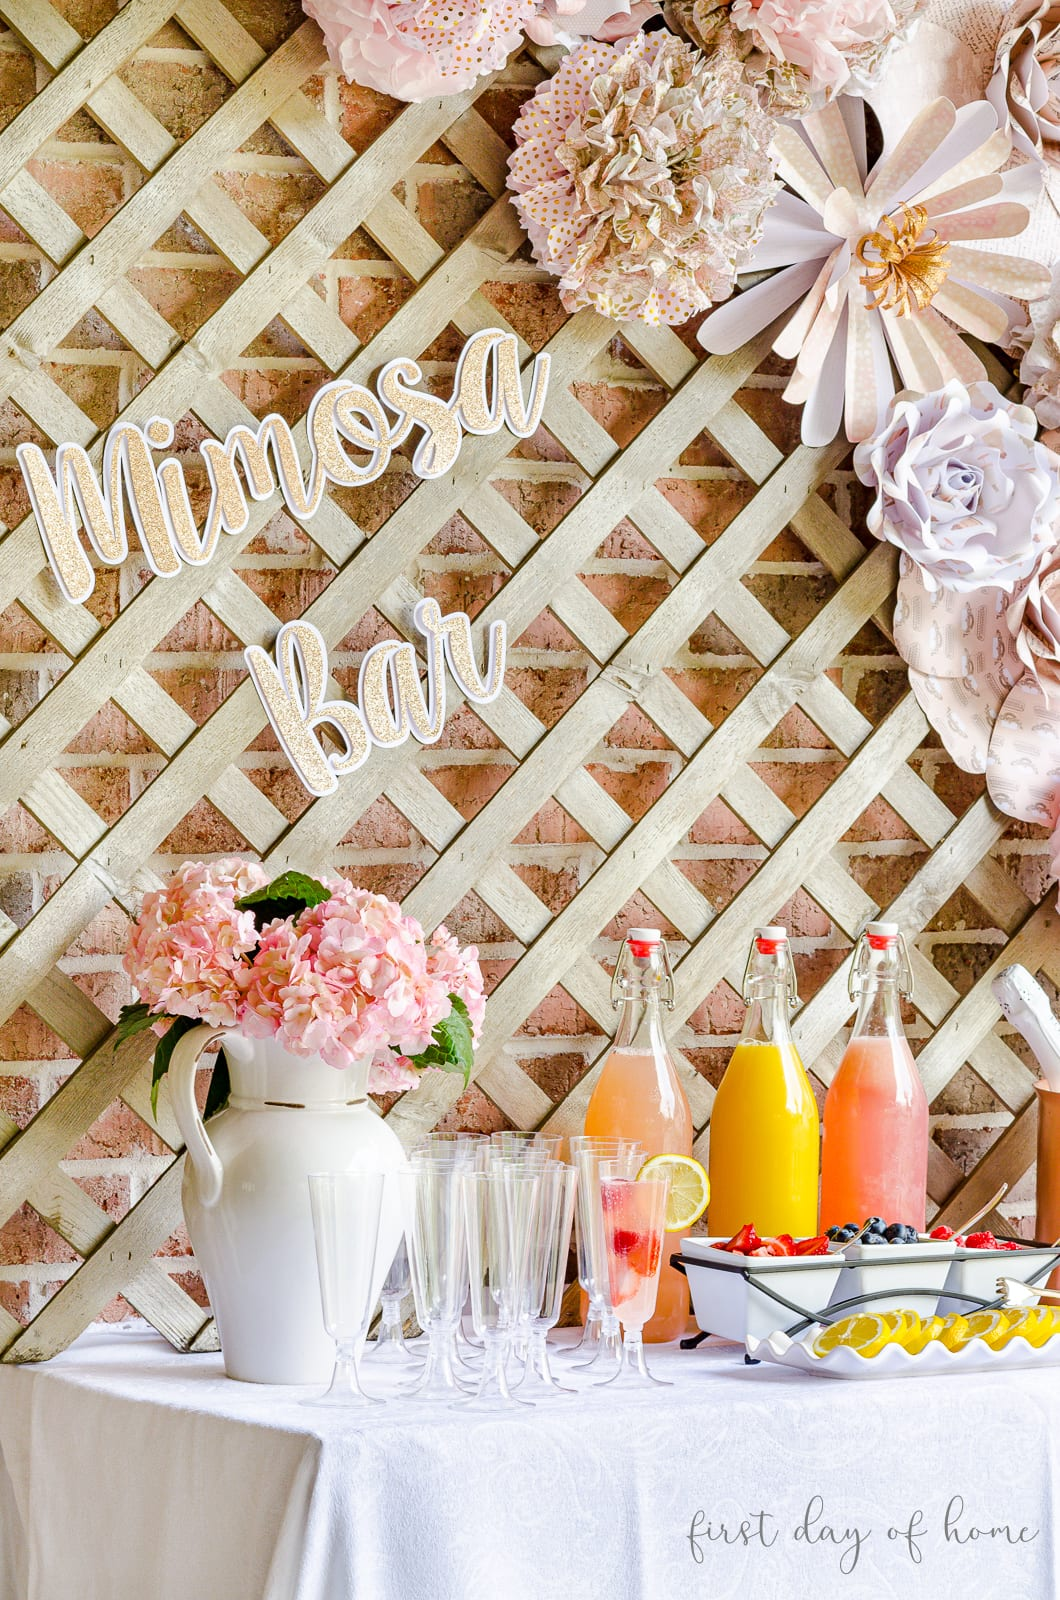 Mimosa bar ideas for juices and garnishes